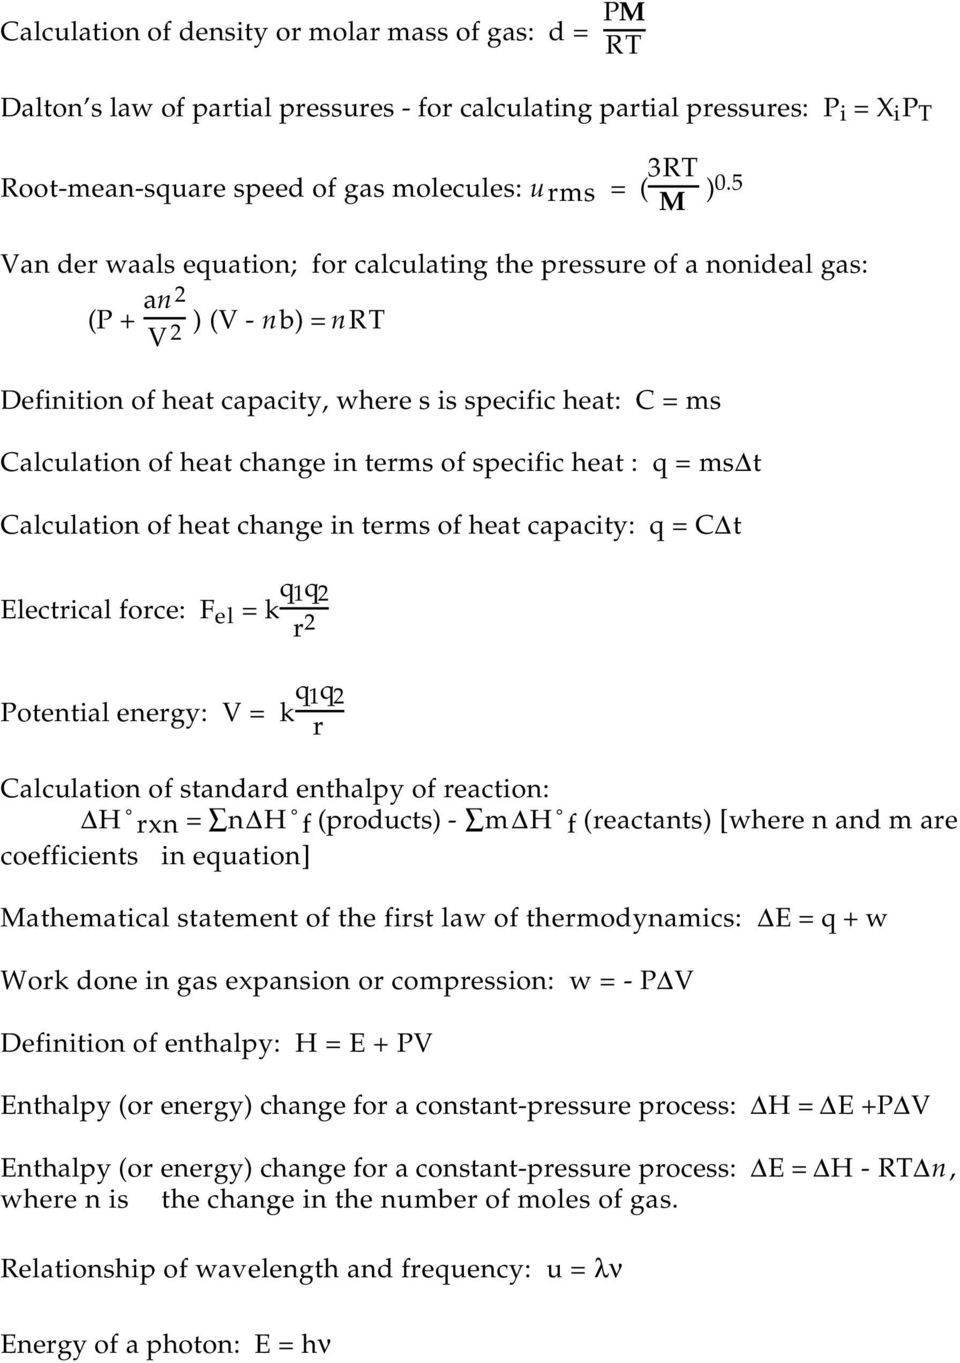 terms of specific heat : q = ms t Calculation of heat change in terms of heat capacity: q = C t Electrical force: F el = k q 1q 2 r 2 Potential energy: V = k q 1q 2 r Calculation of standard enthalpy